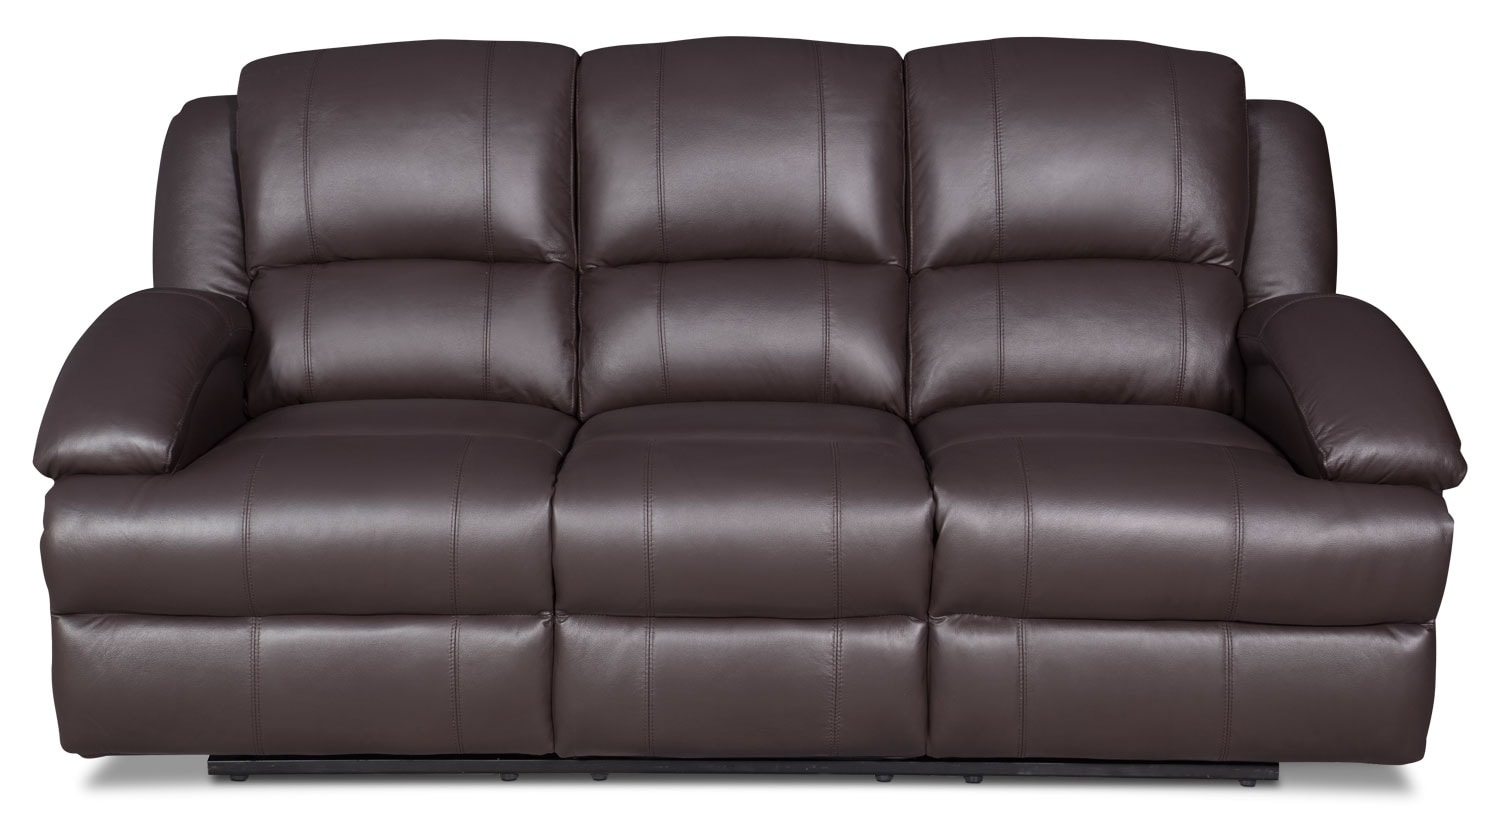 Luka genuine leather reclining sofa brown united for Real leather sofas